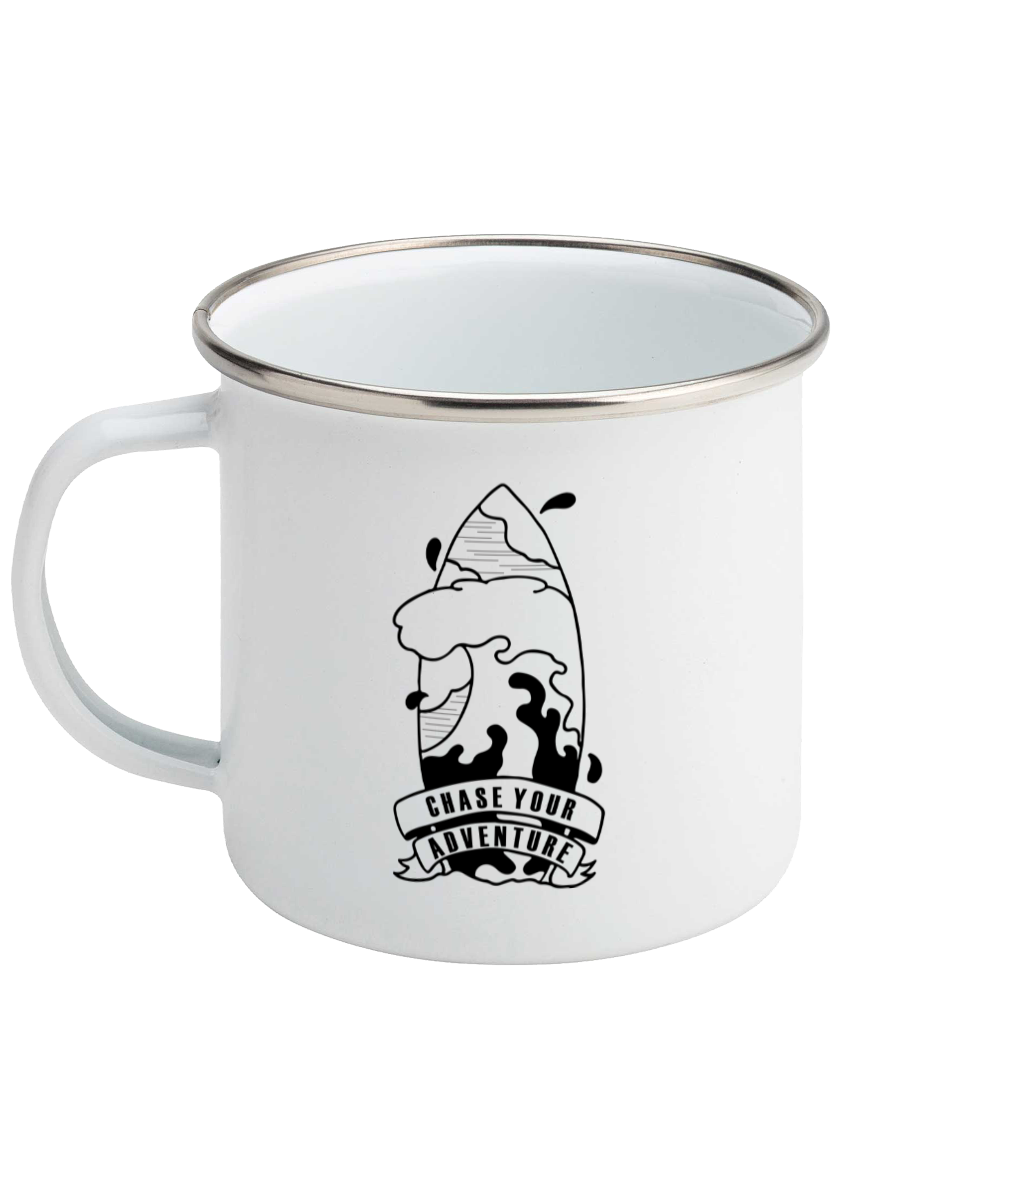 Chase Your Adventure- Surf Edition - Enamel Mug, Suggested Products, Pen and Ink Studios Adventure Clothing